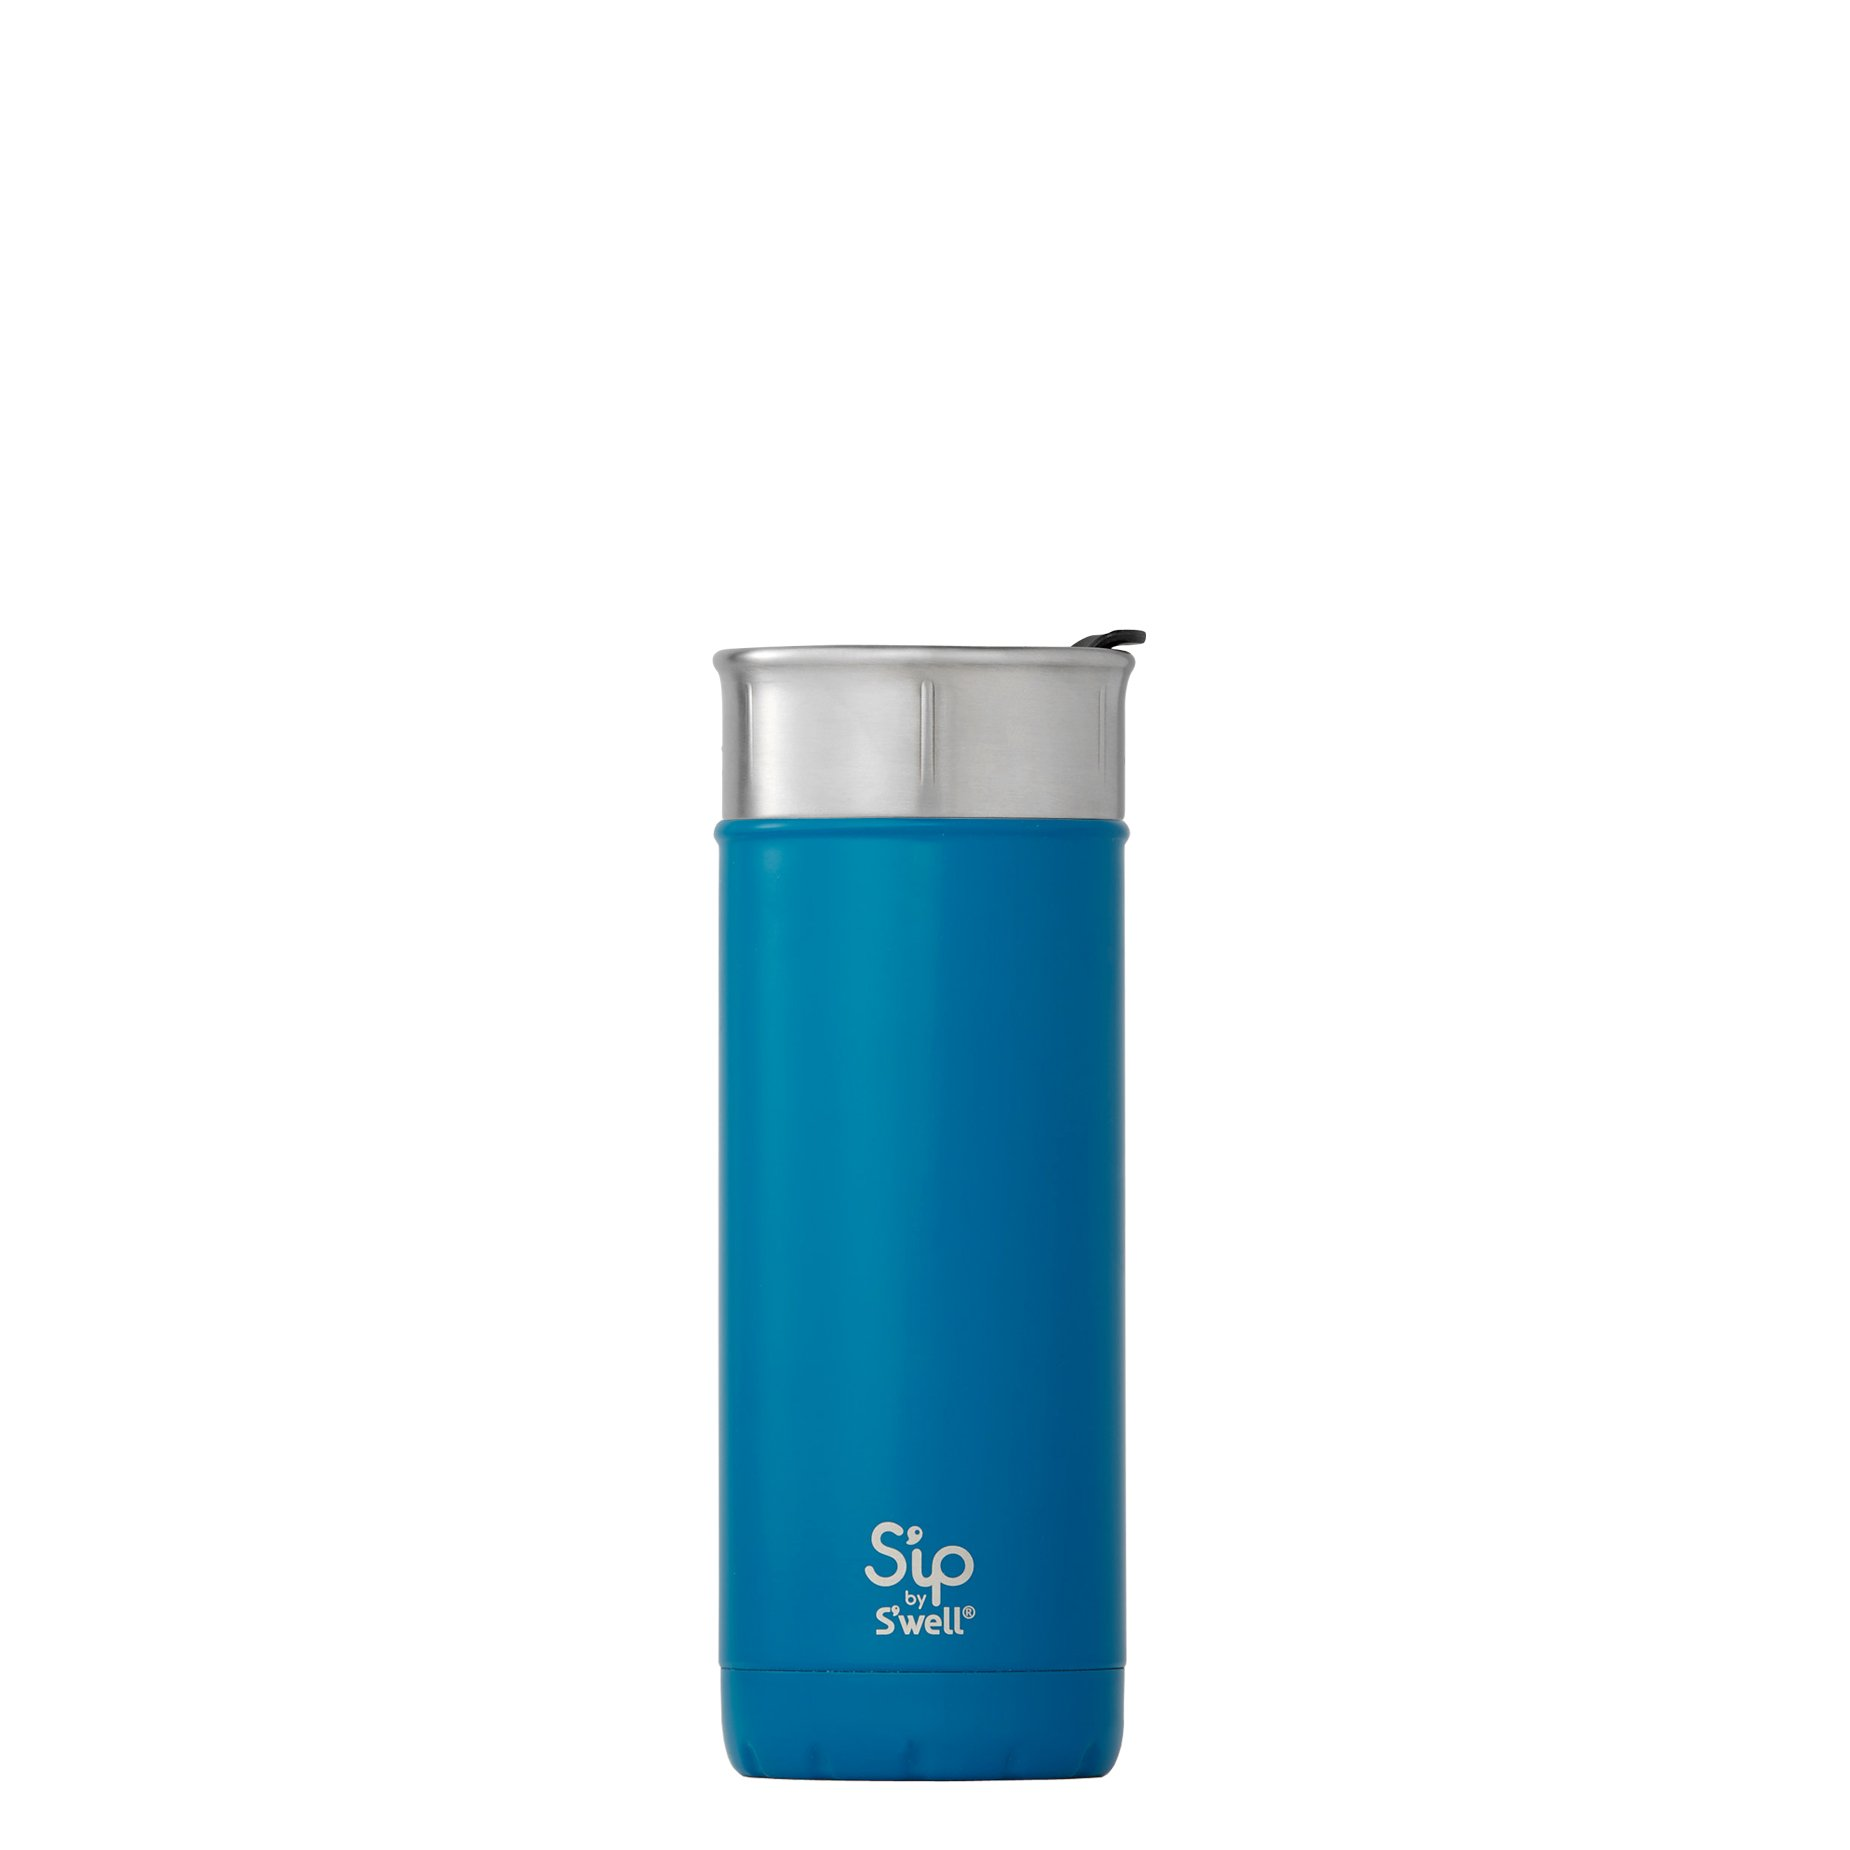 S'ip by S'well 20316-A18-03540 Travel Mug, 16oz, Jersey Blue by S'well